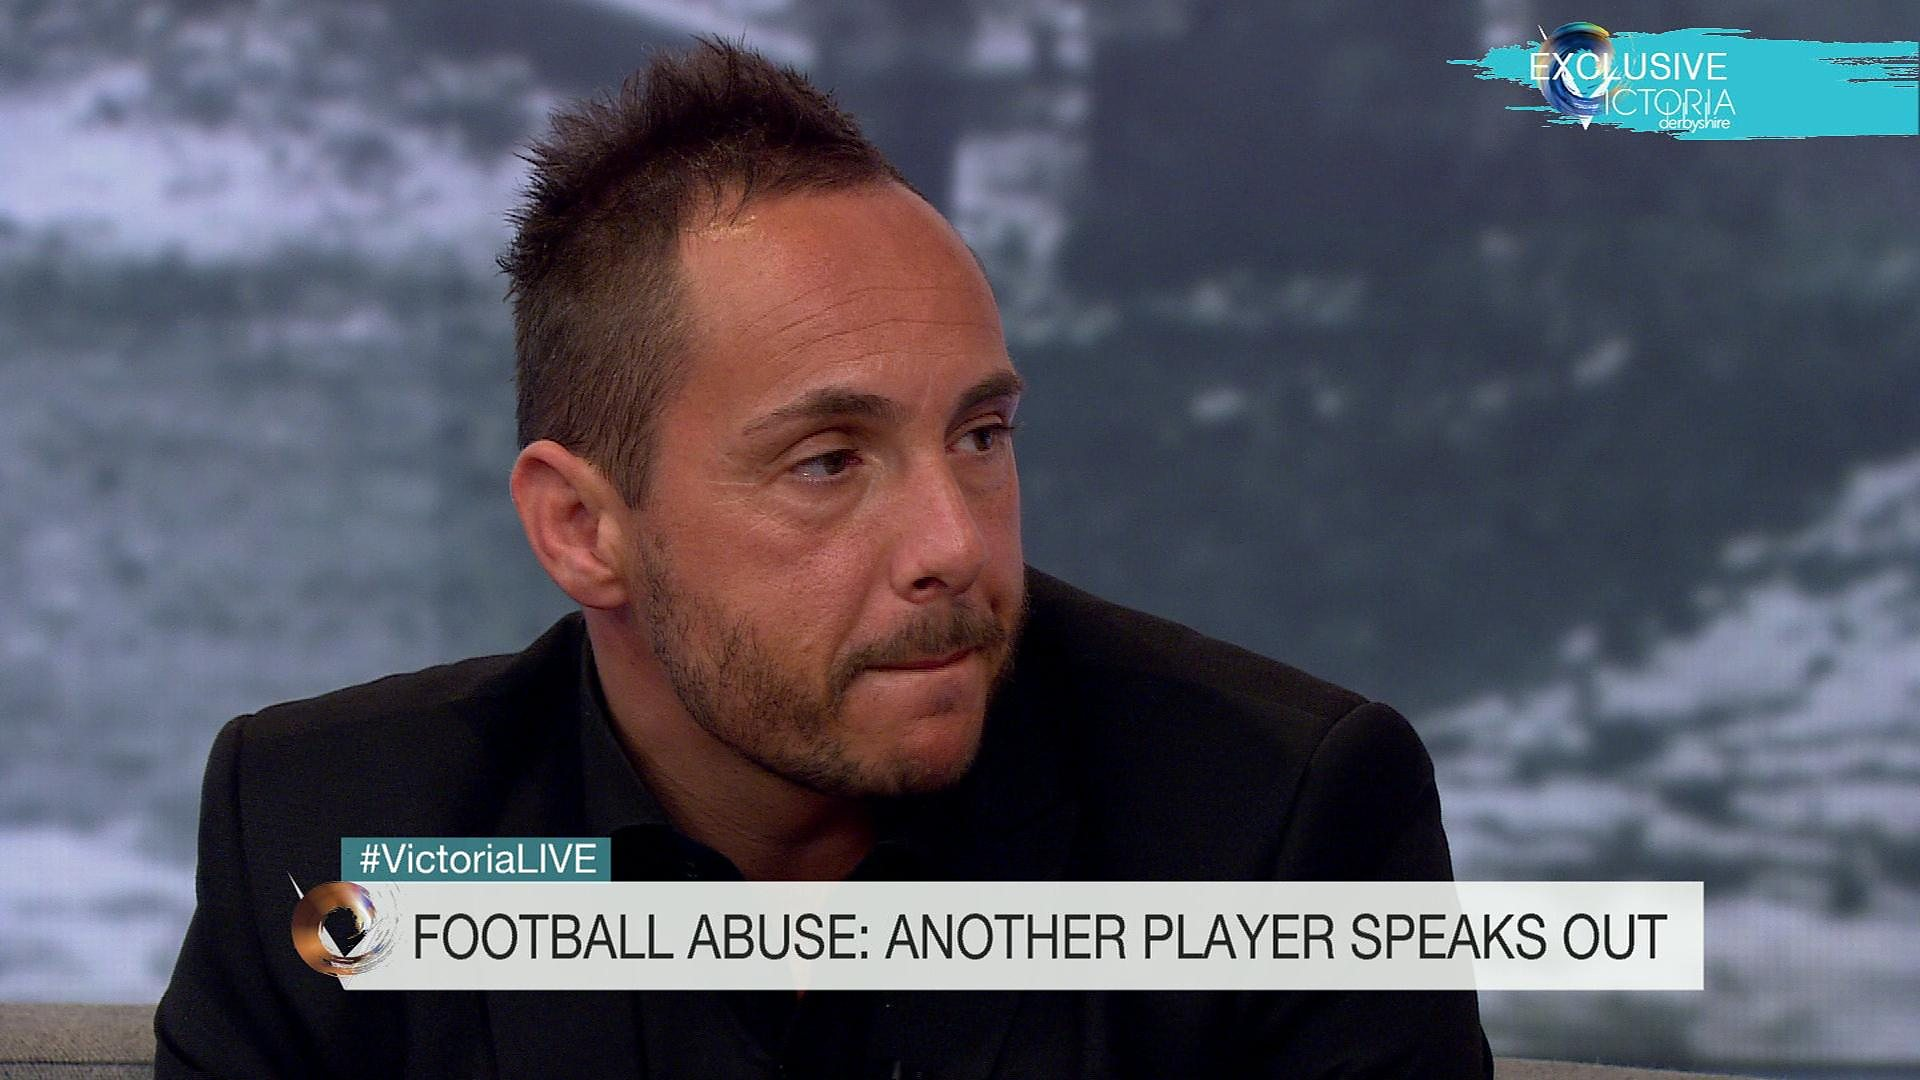 18And Abused Stunning bbc two - victoria derbyshire, ex-footballer: 'abuse turned my